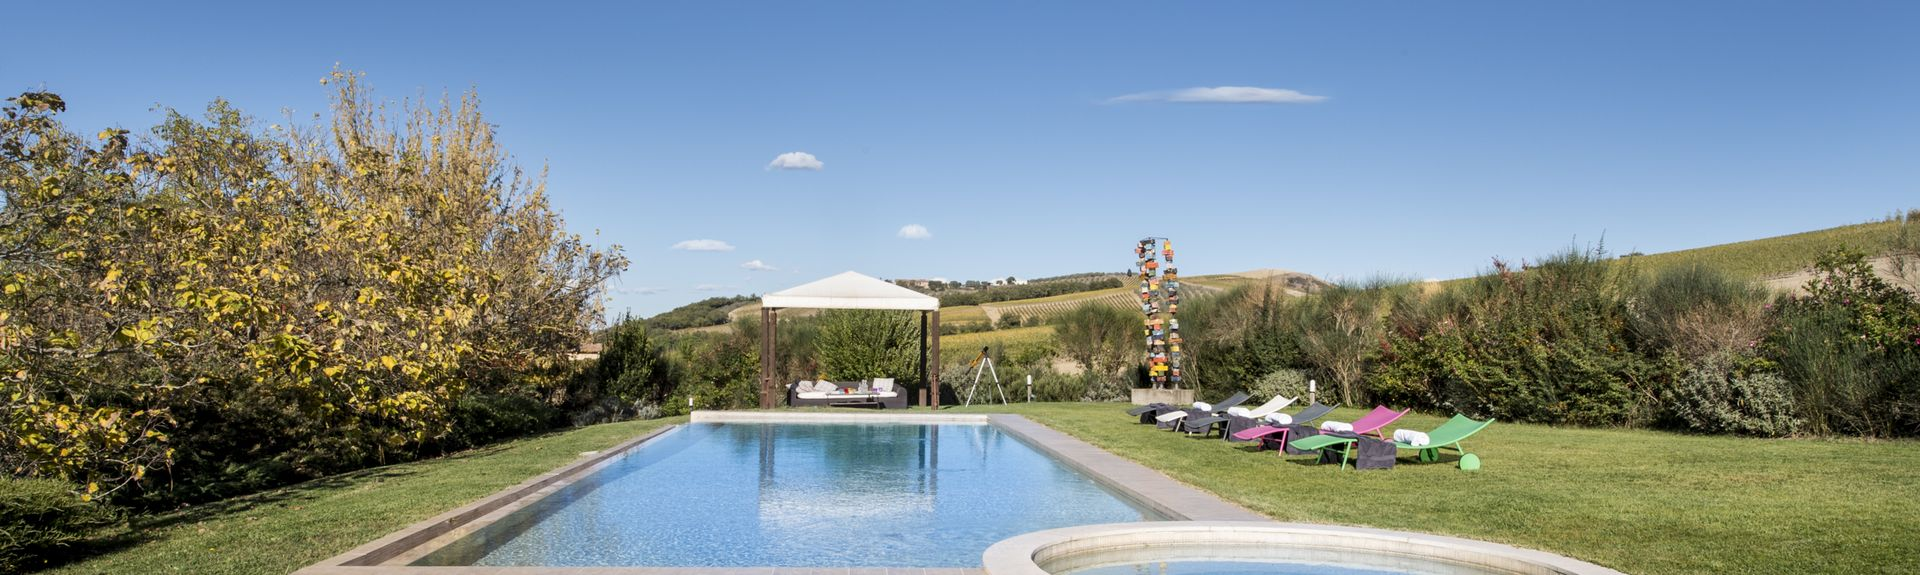 Villas Near Siena Italy torrita di siena, it vacation rentals: villa rentals & more